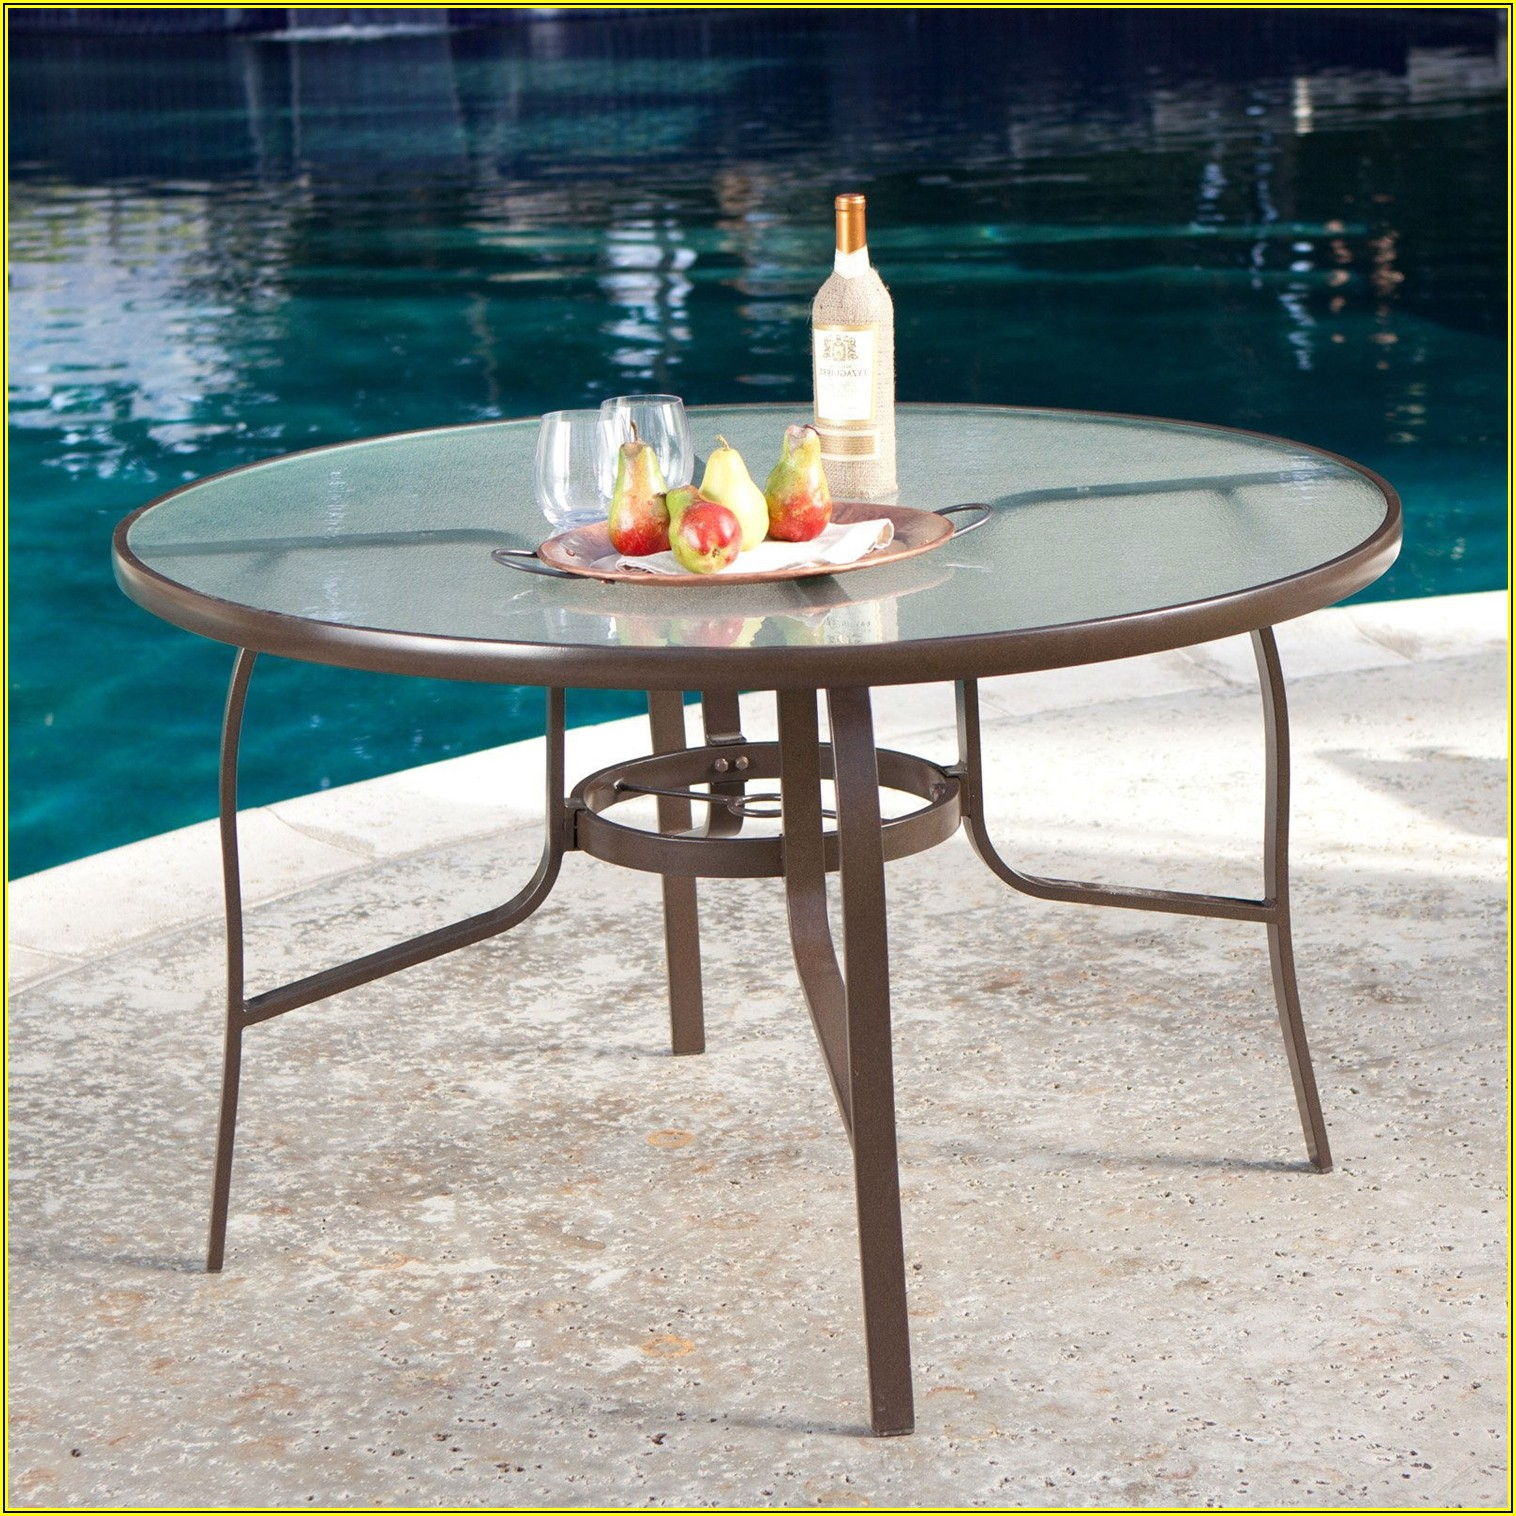 48 Inch Round Glass Patio Table